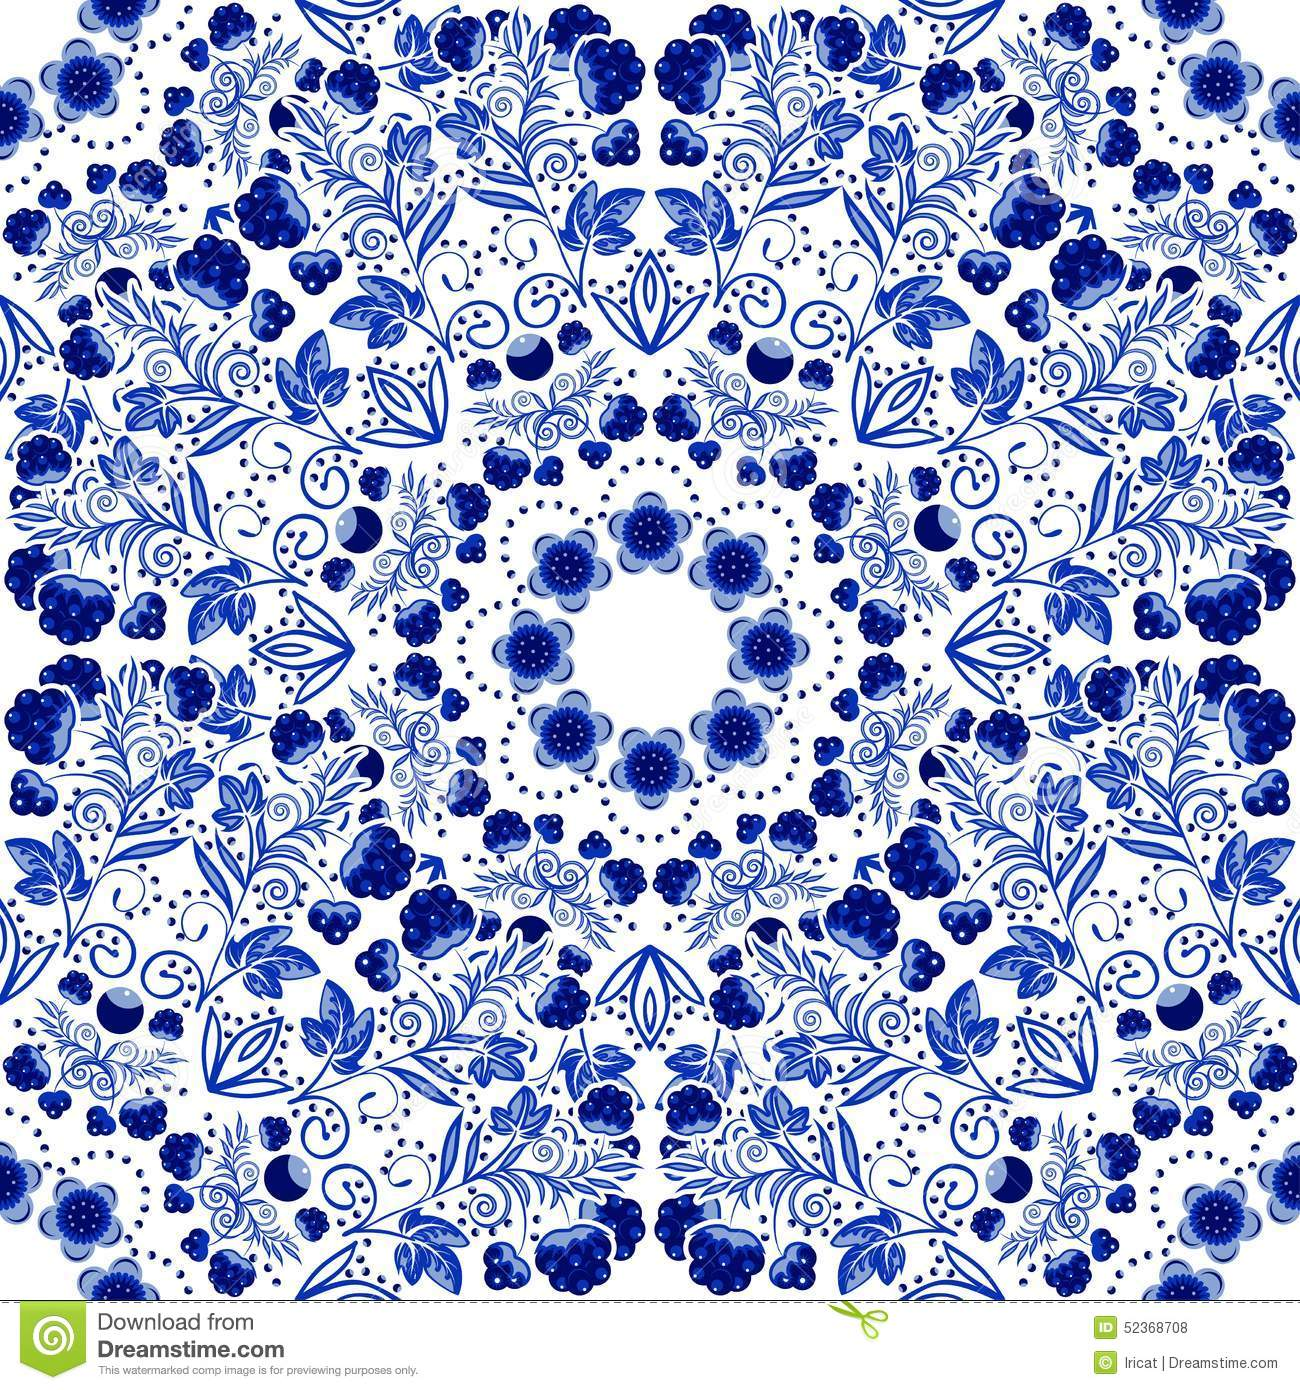 Wall Tiles Designs Seamless Floral Pattern Blue Ornament Of Berries And